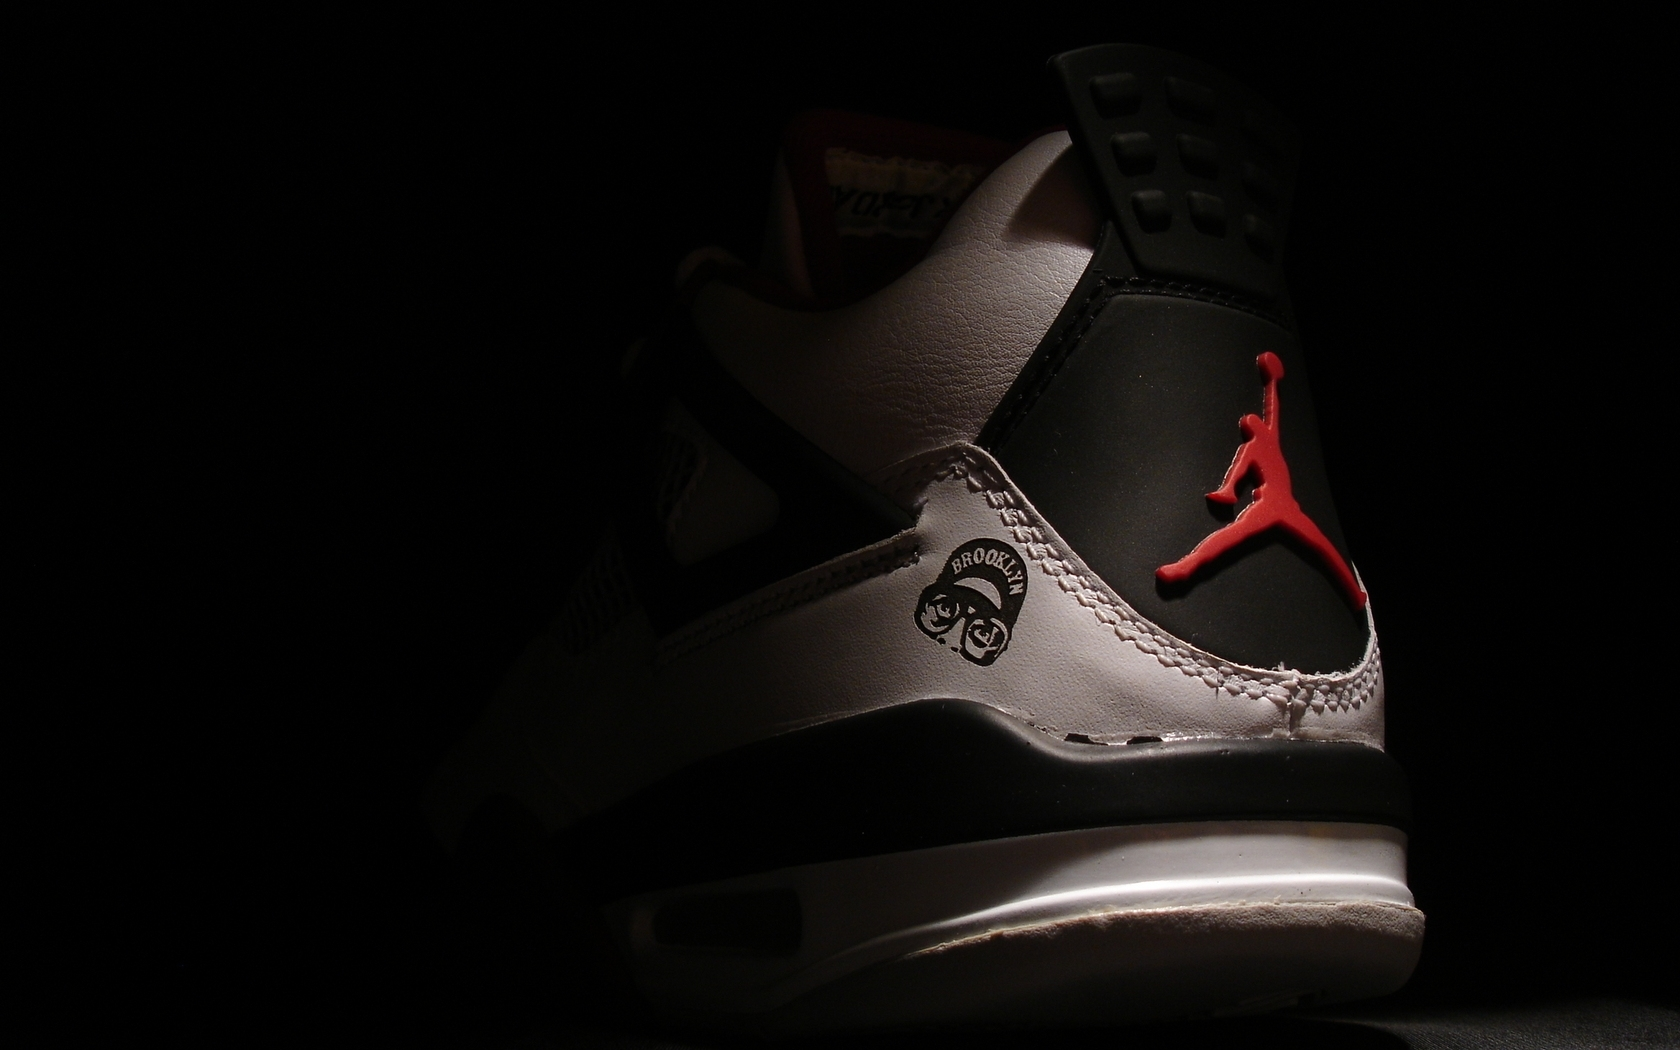 Jordan Mars Blackmon Air Shoes Wallpaper 1680x1050 Full HD